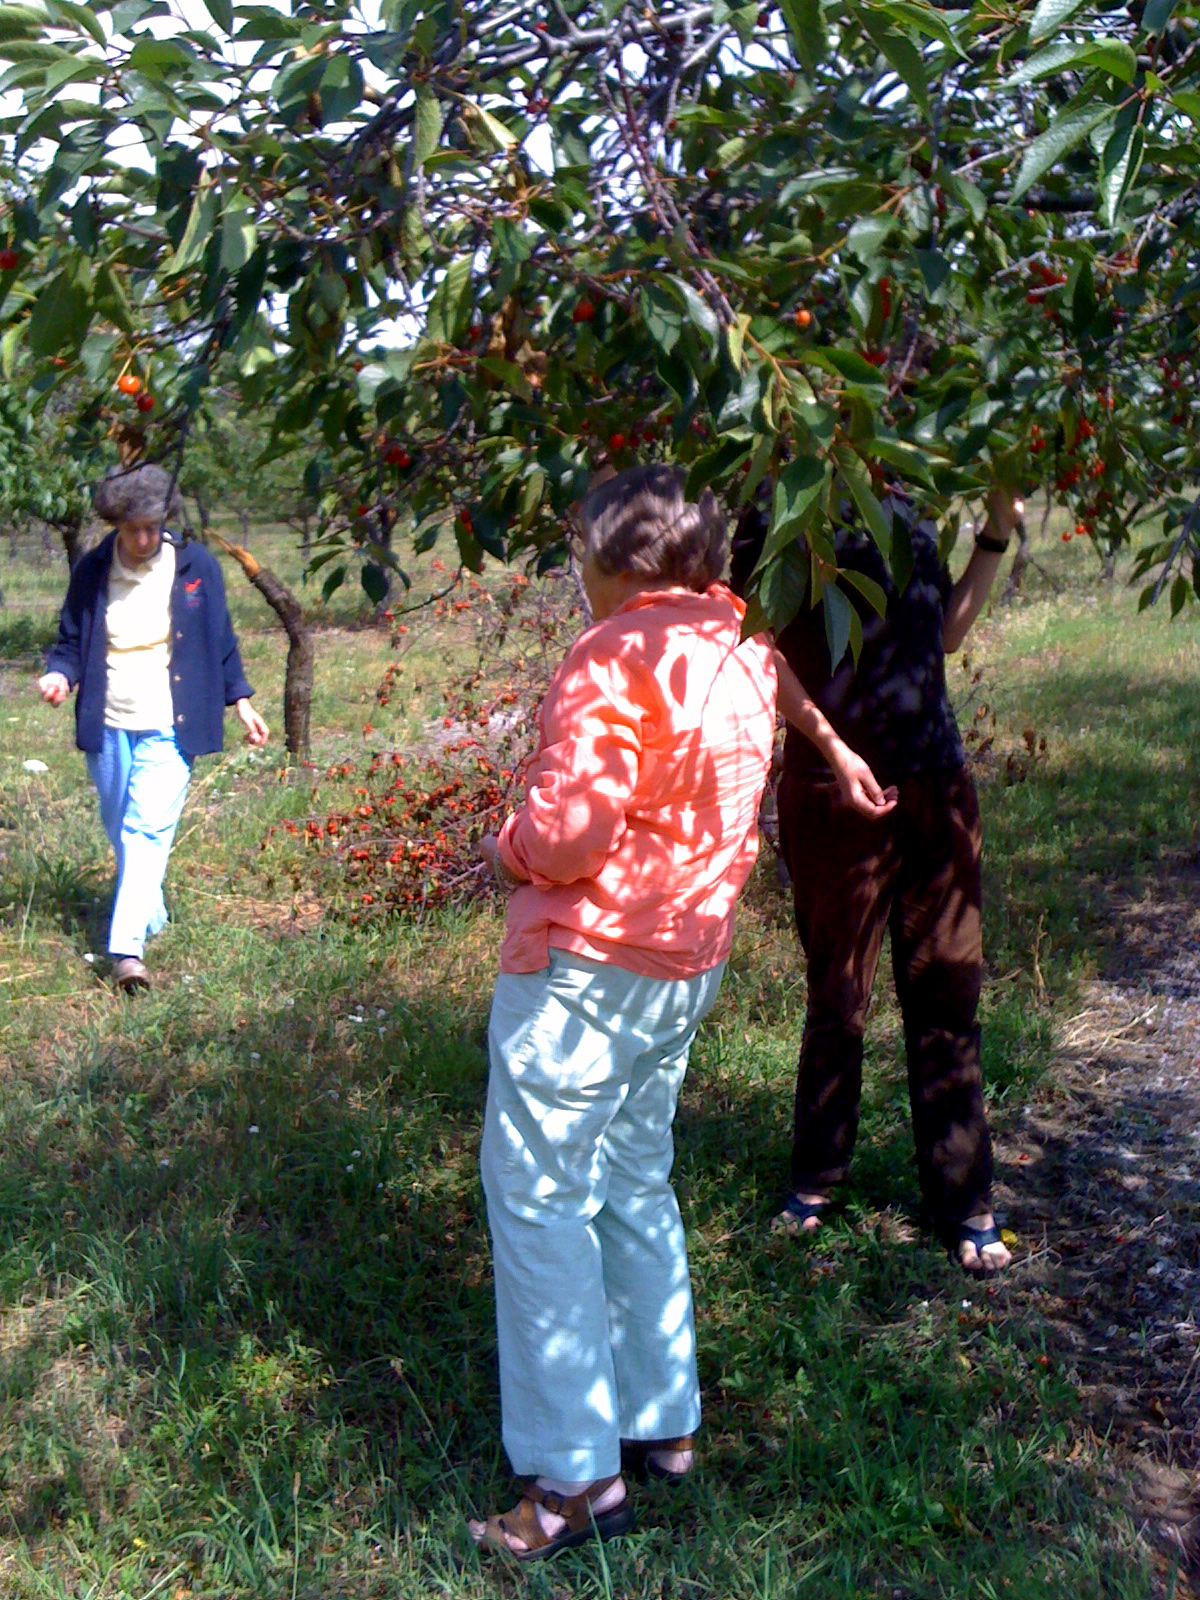 gleaning the cherries in Beulah